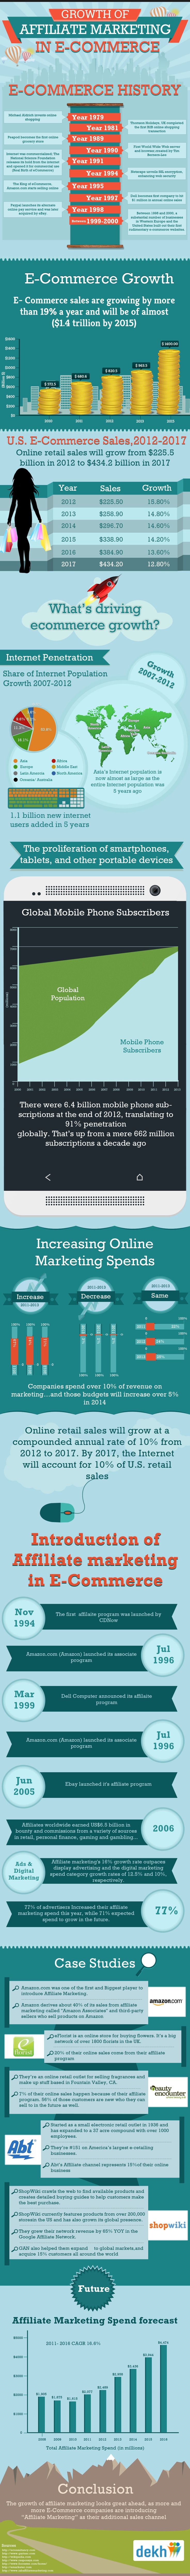 Growth Of Affiliate Marketing In E-Commerce #Infographic #marketing #Ecommerce